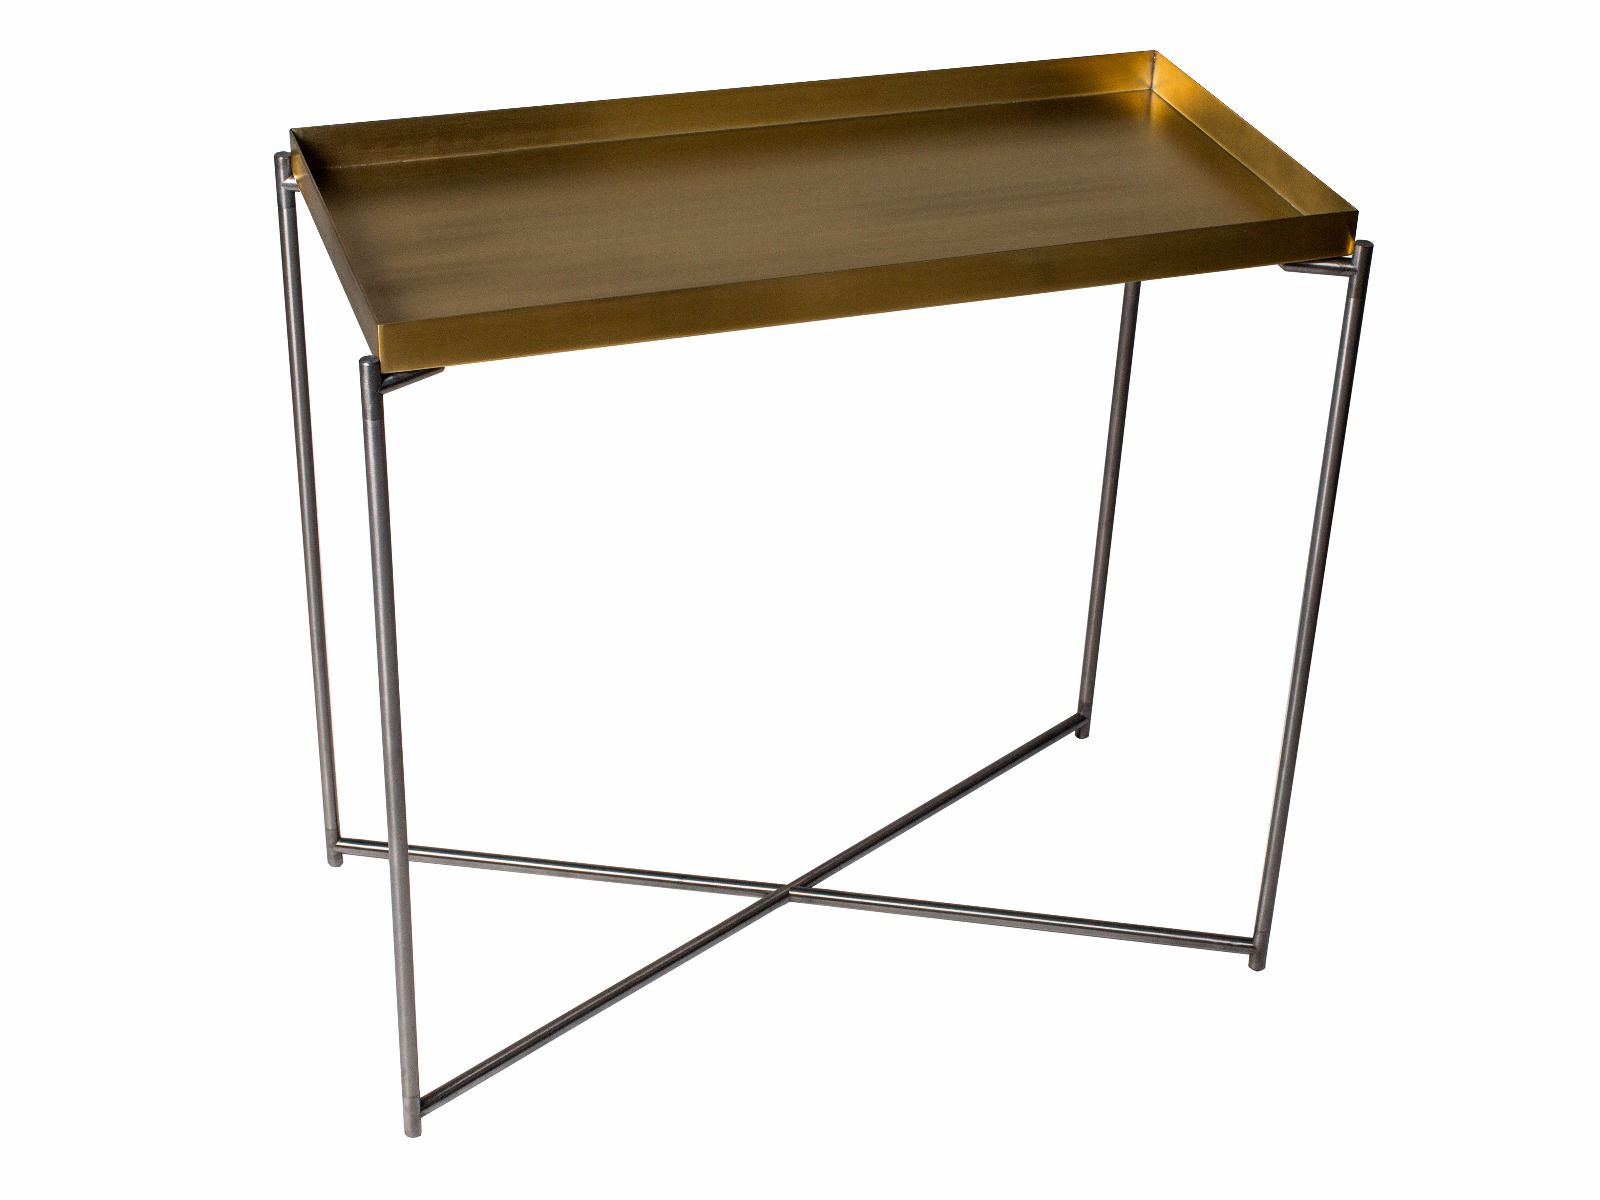 Collection Regarding Current Frame Console Tables (Gallery 16 of 20)